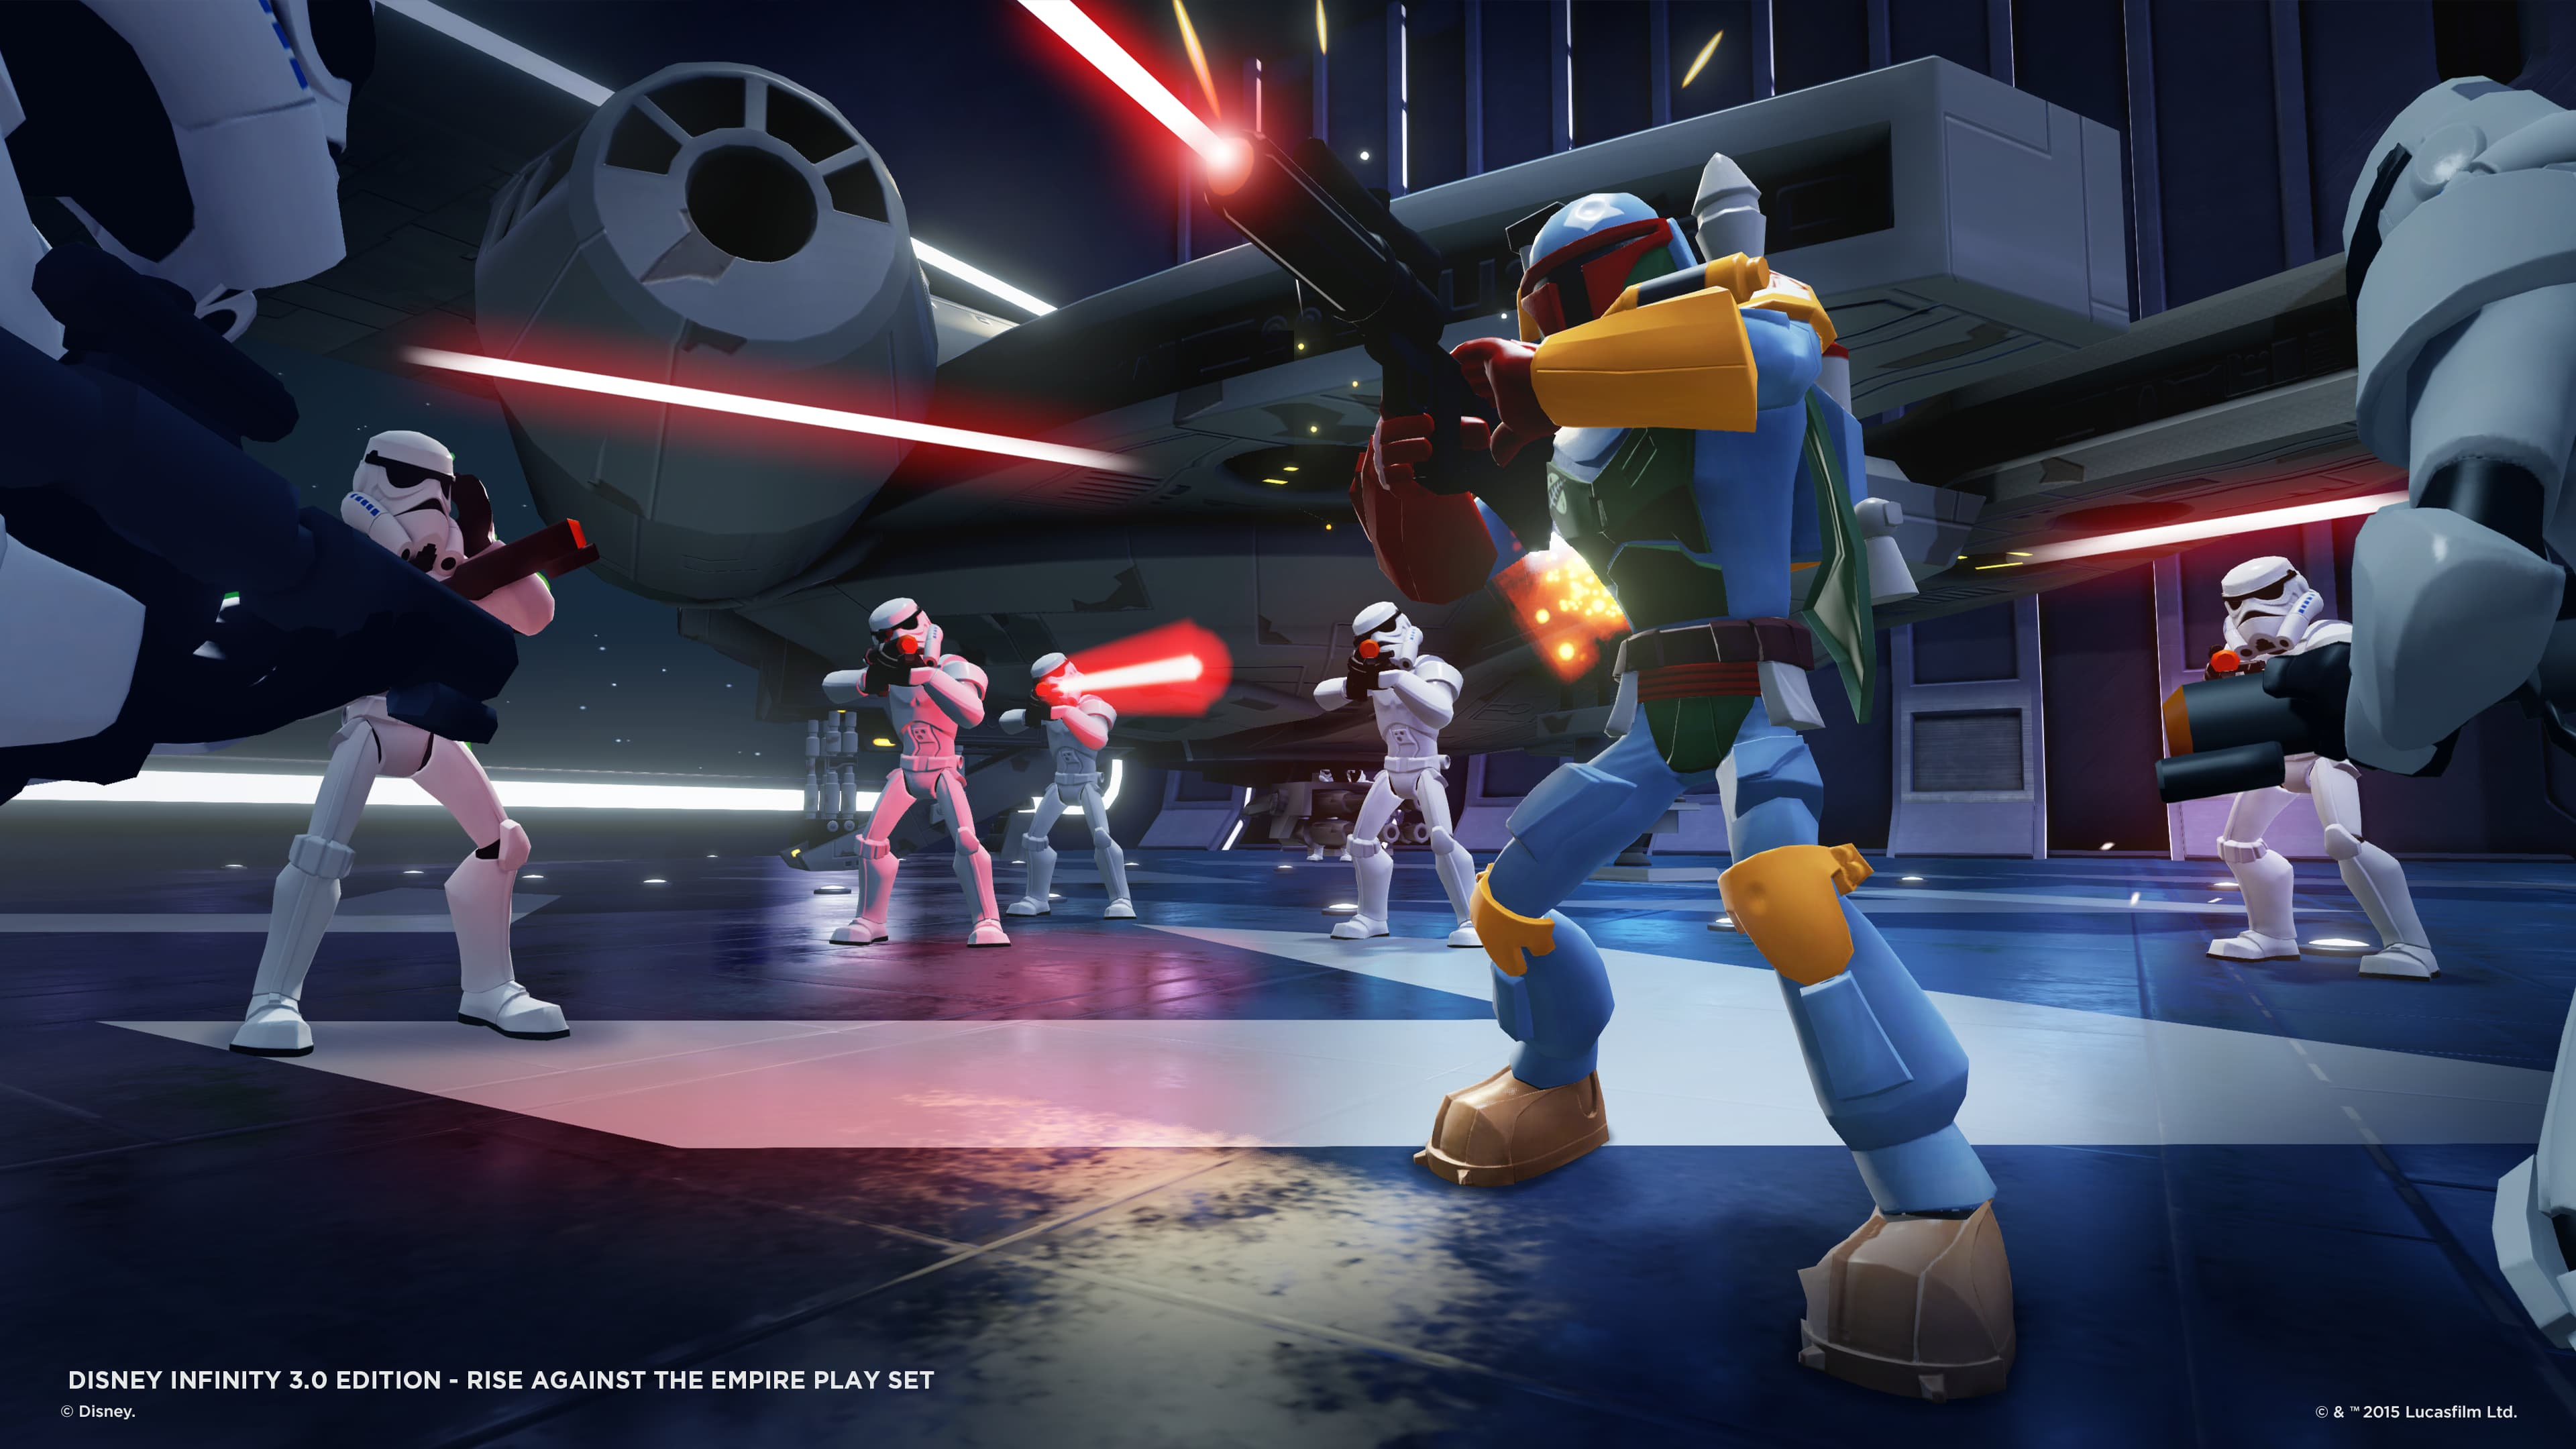 Disney Infinity 3.0, Boba Fett Gameplay